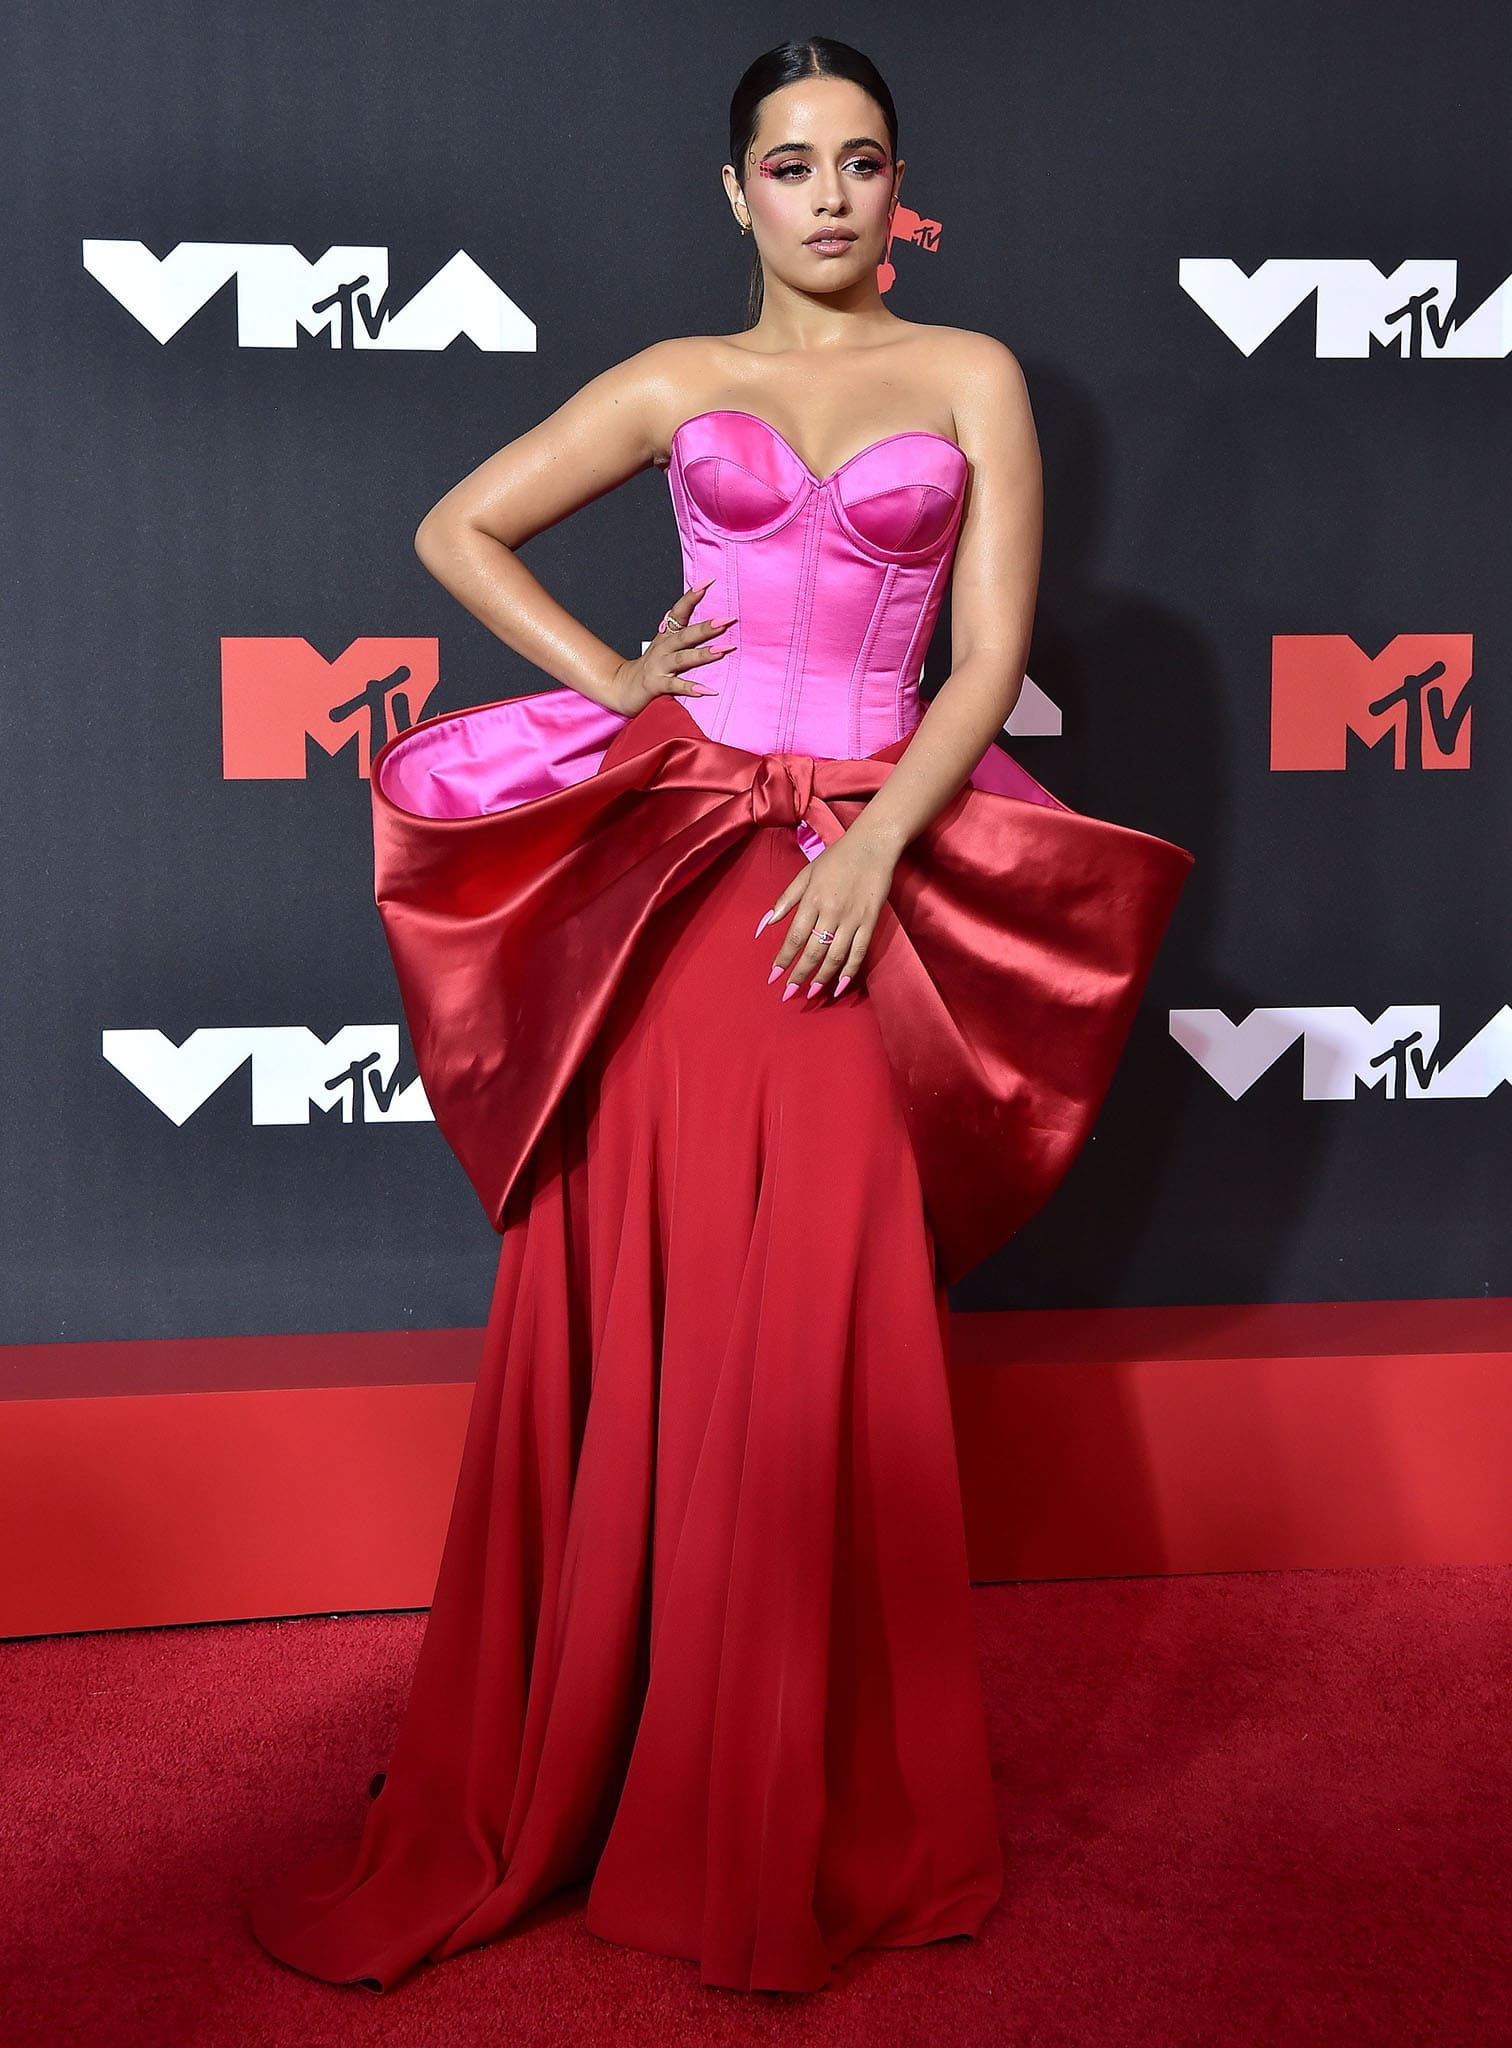 Camila Cabello attends the 2021 MTV VMAs in Alexis Mabille Fall 2021 pink and red color-block gown on September 12, 2021